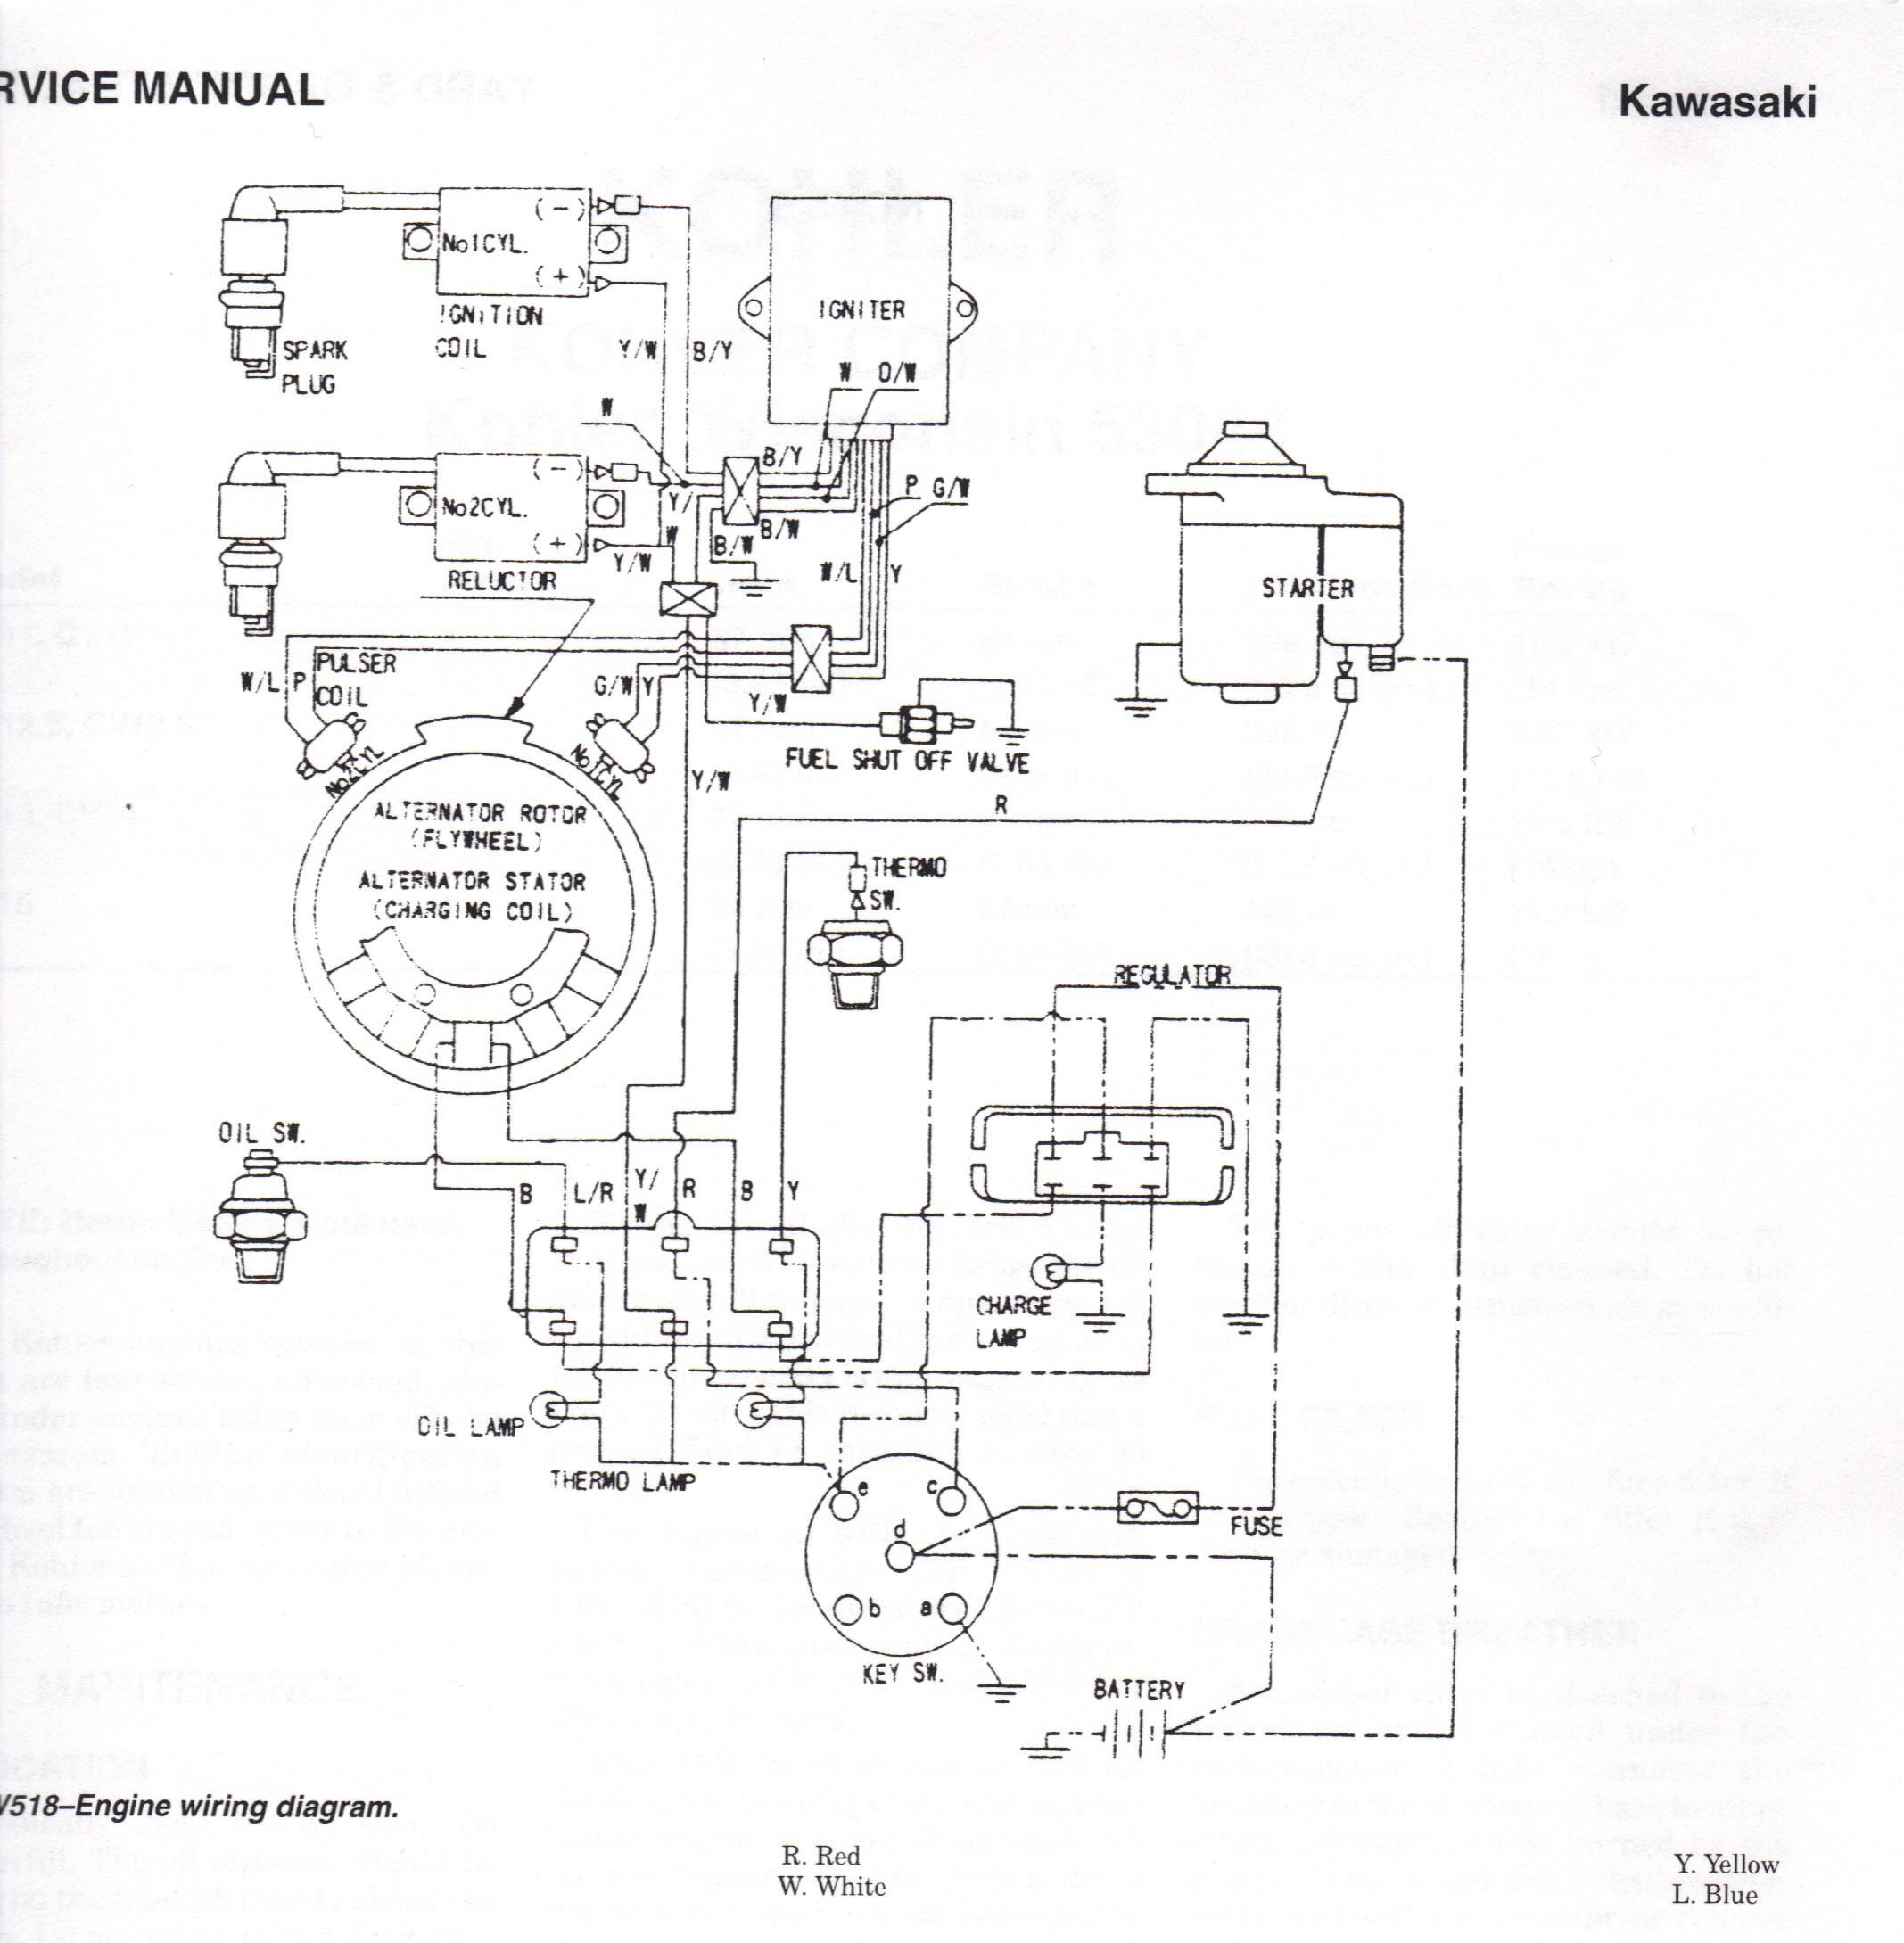 wiring diagrams for 757 john deere 25 hp kawasaki diagram - - Yahoo Image  Search Results